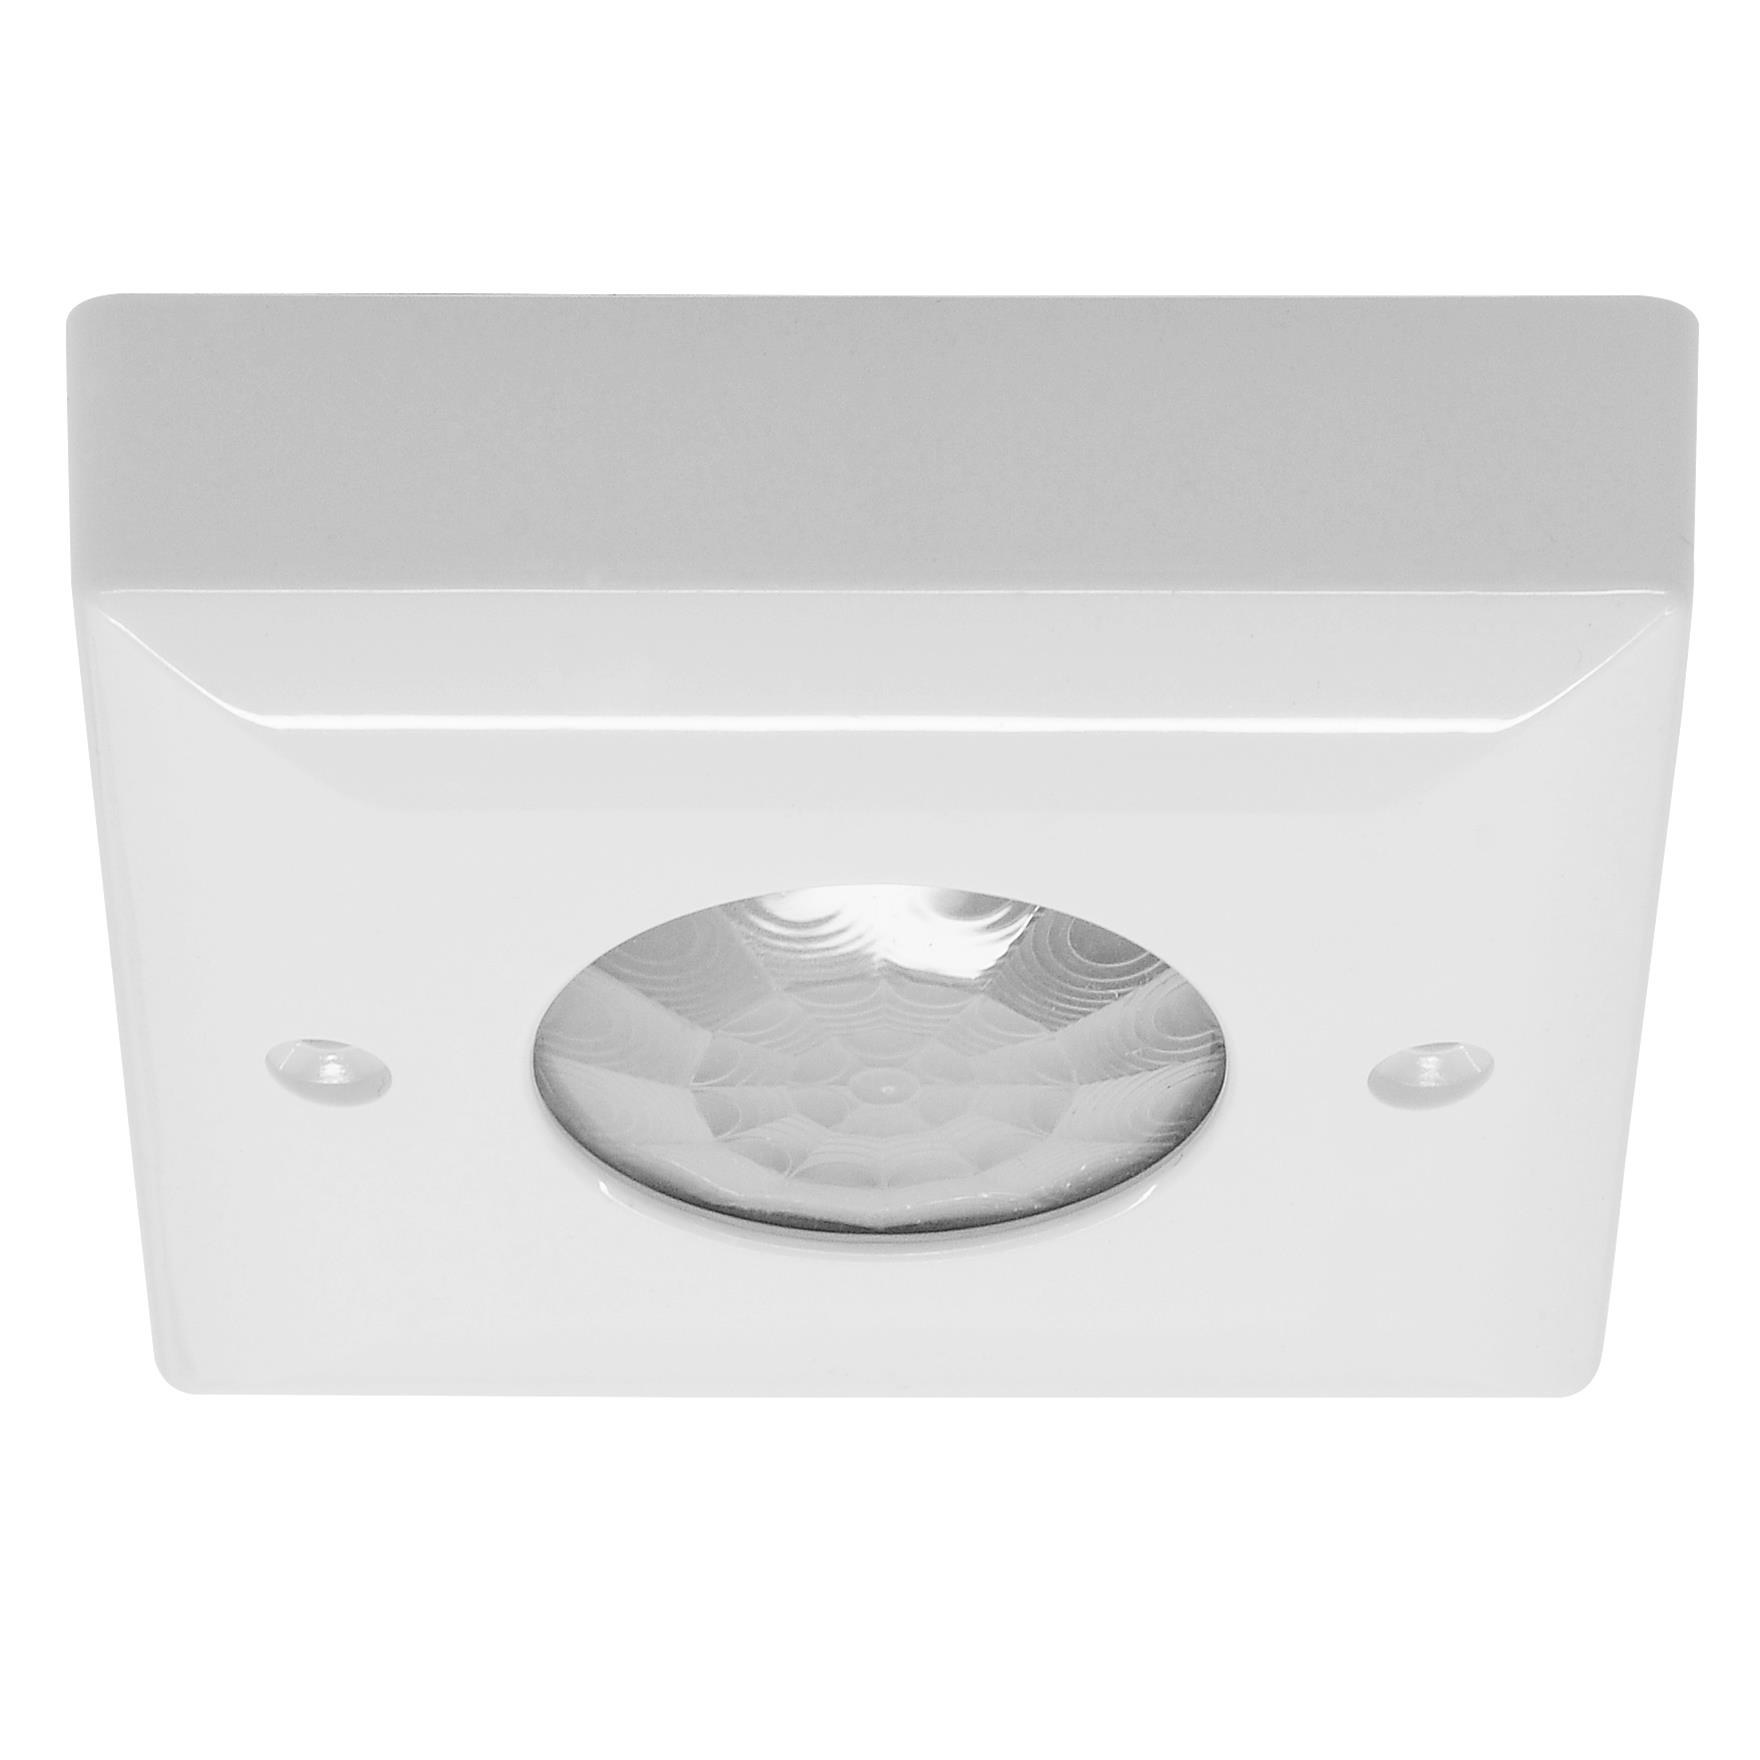 Ceiling Surface Mounted Pir Switch White Plastic